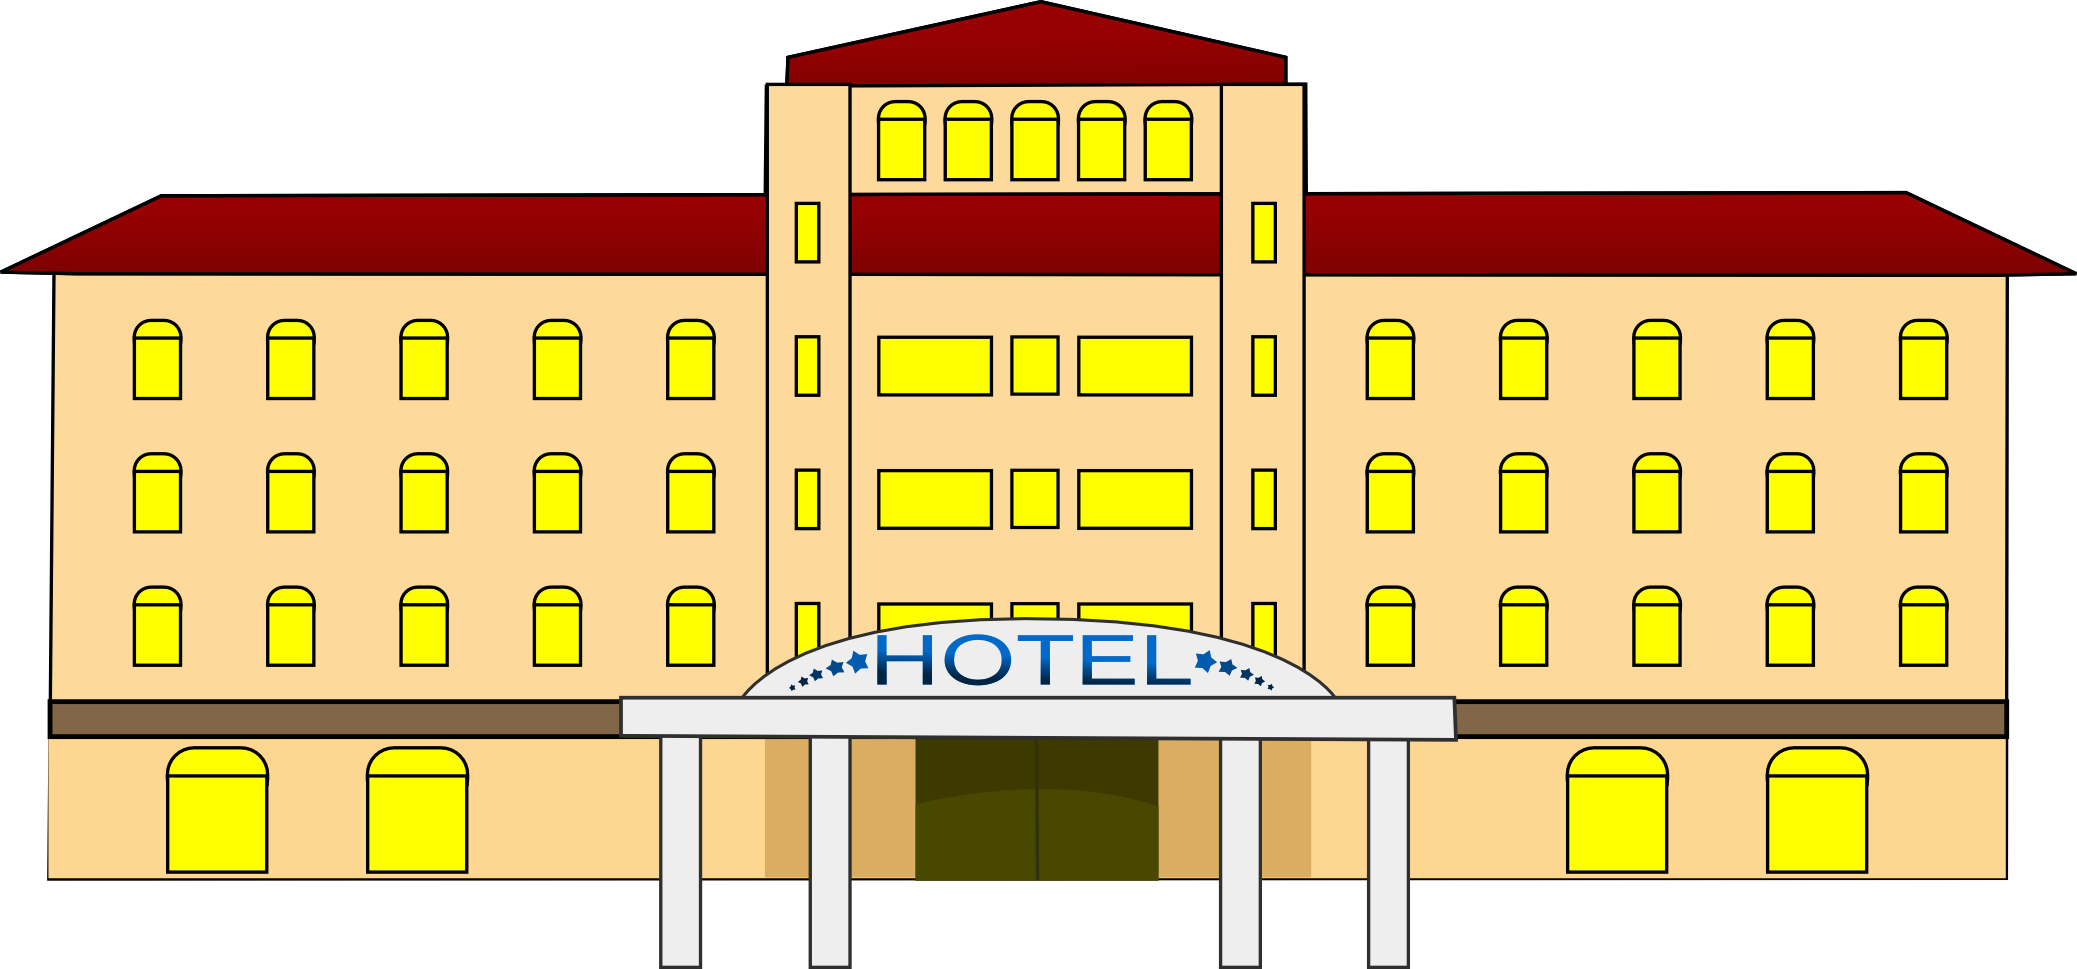 Hotel clipart #15, Download drawings